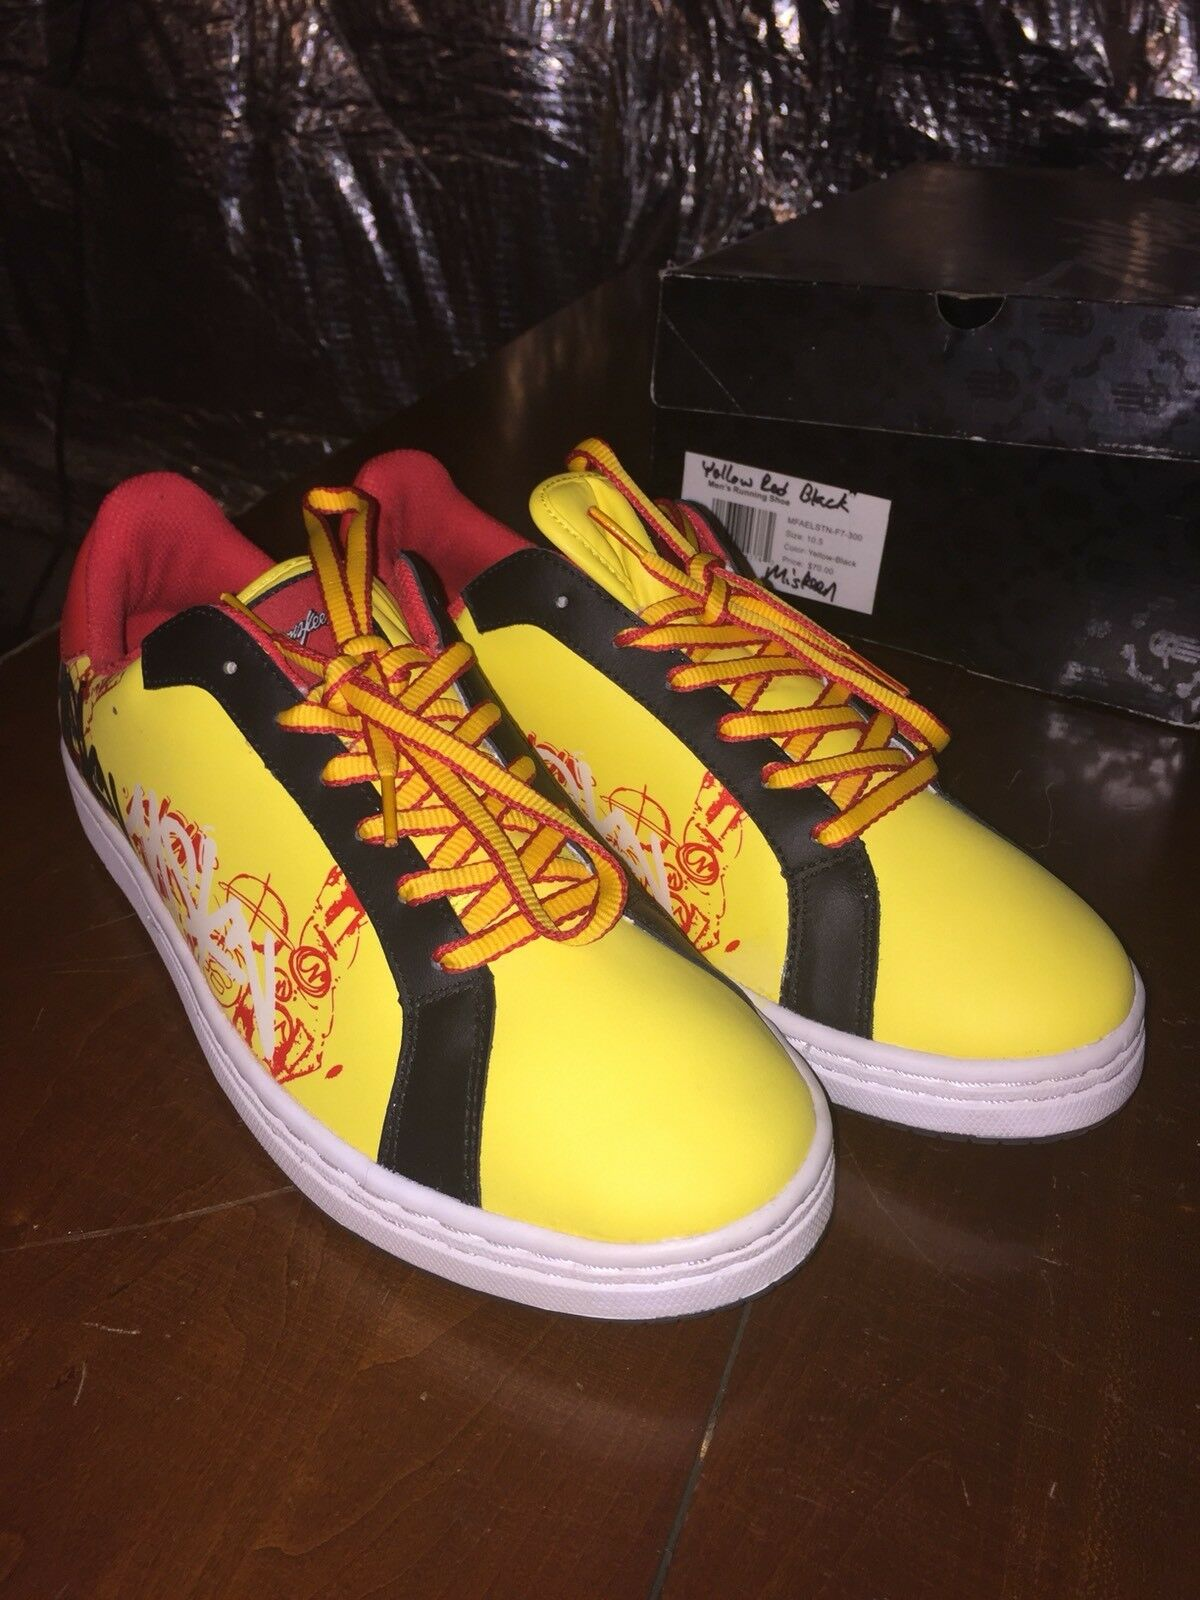 Miskeen Origanal Shoes Size 10.5 Yellow Red Black